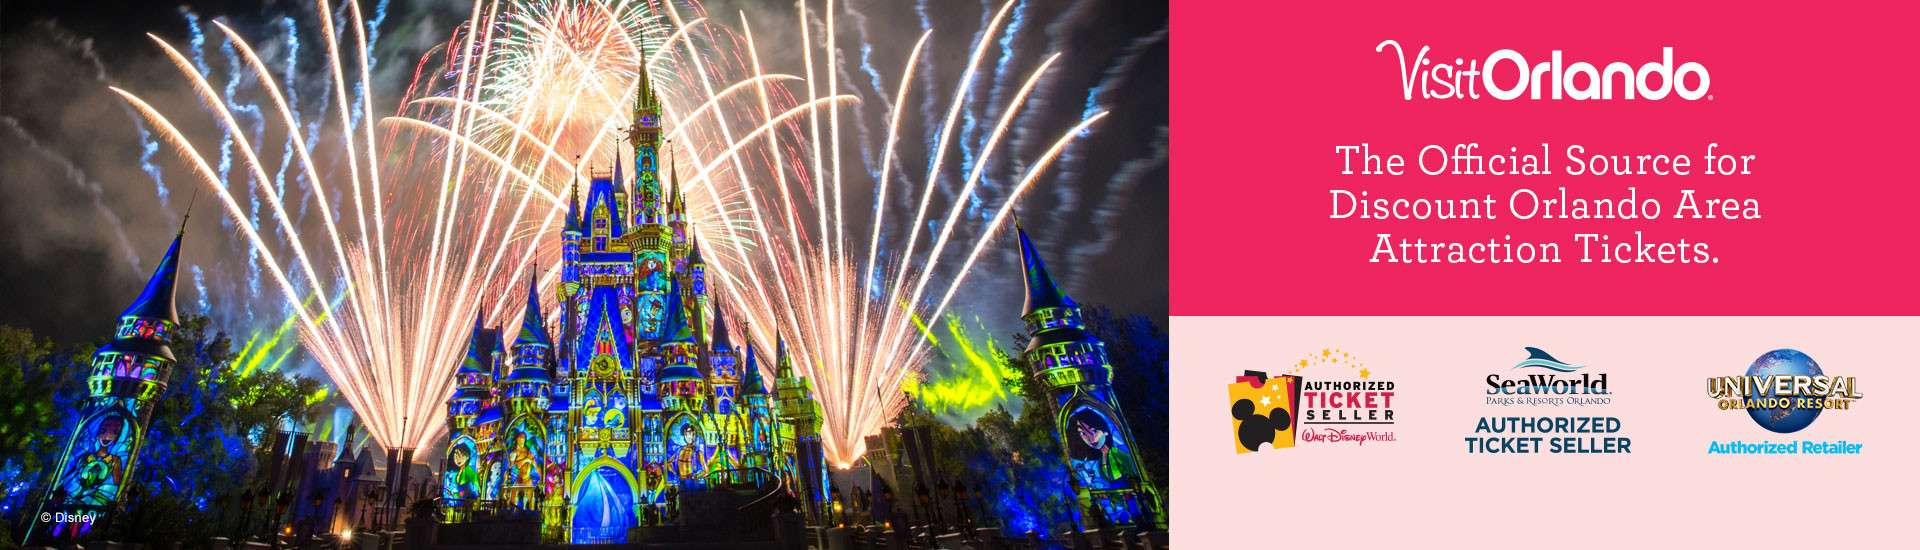 Official Source for Discount Orlando Theme Park & Attraction Tickets